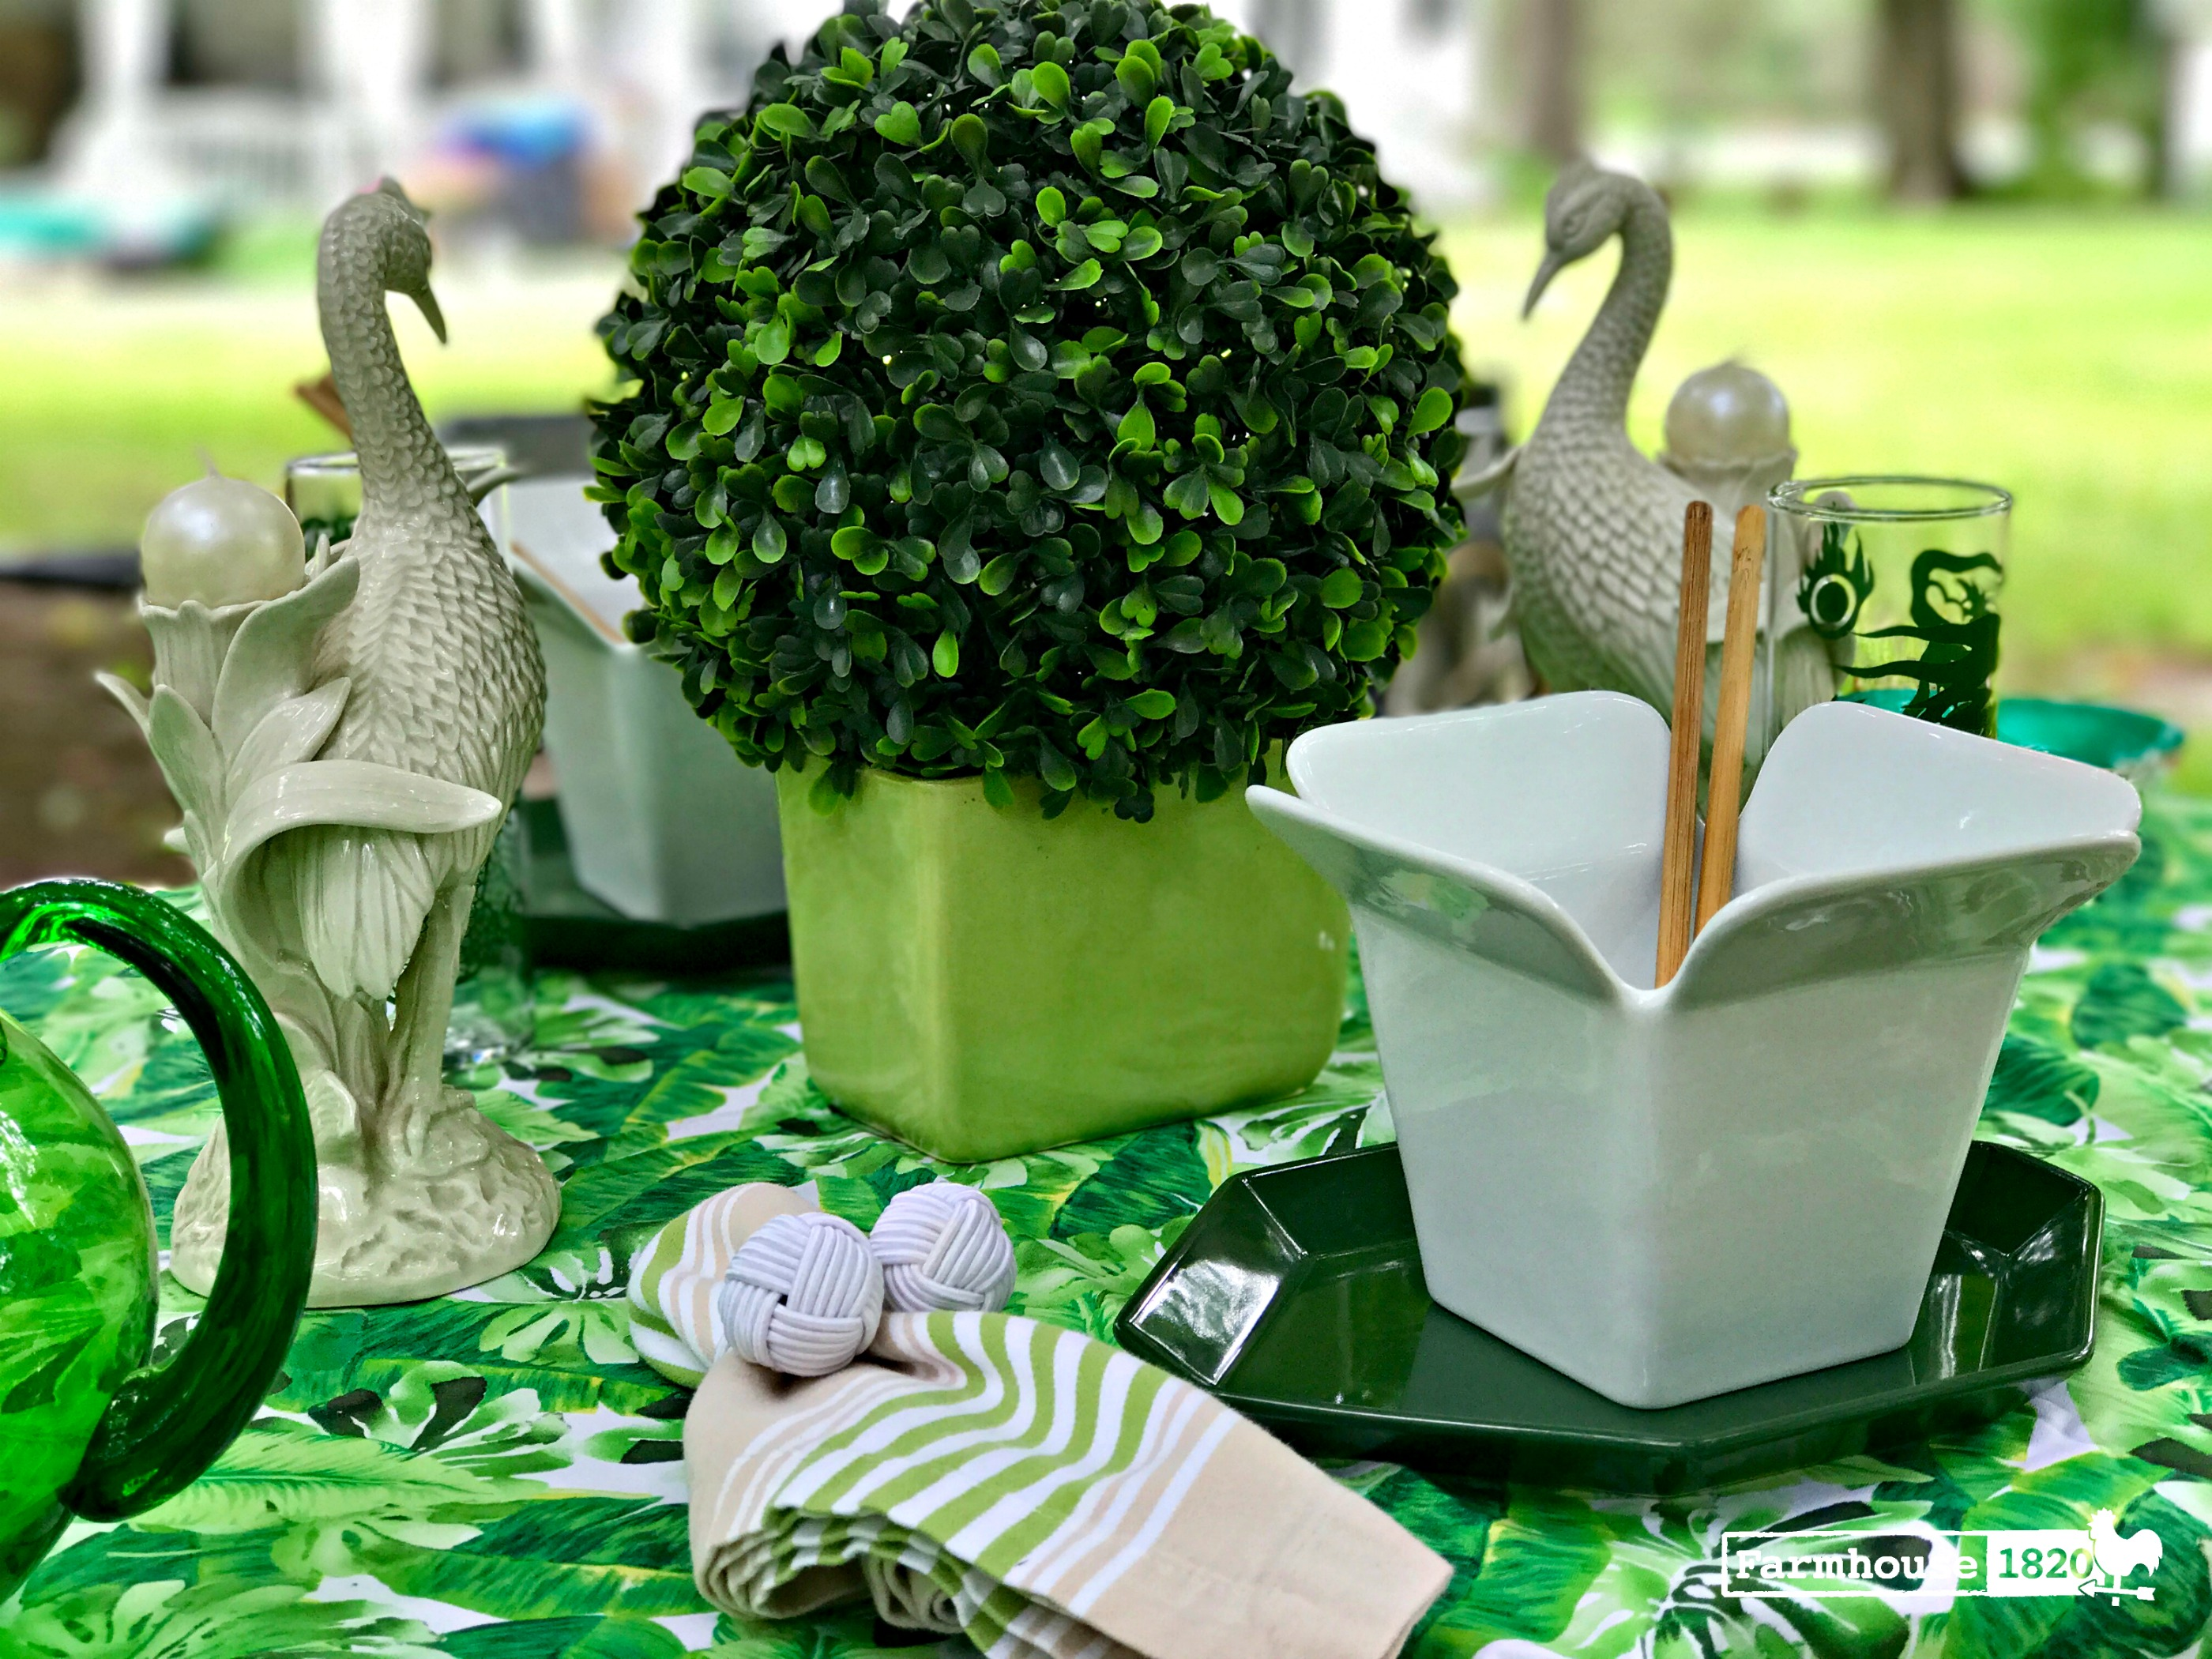 outdoor tablesetting - complimenting nature